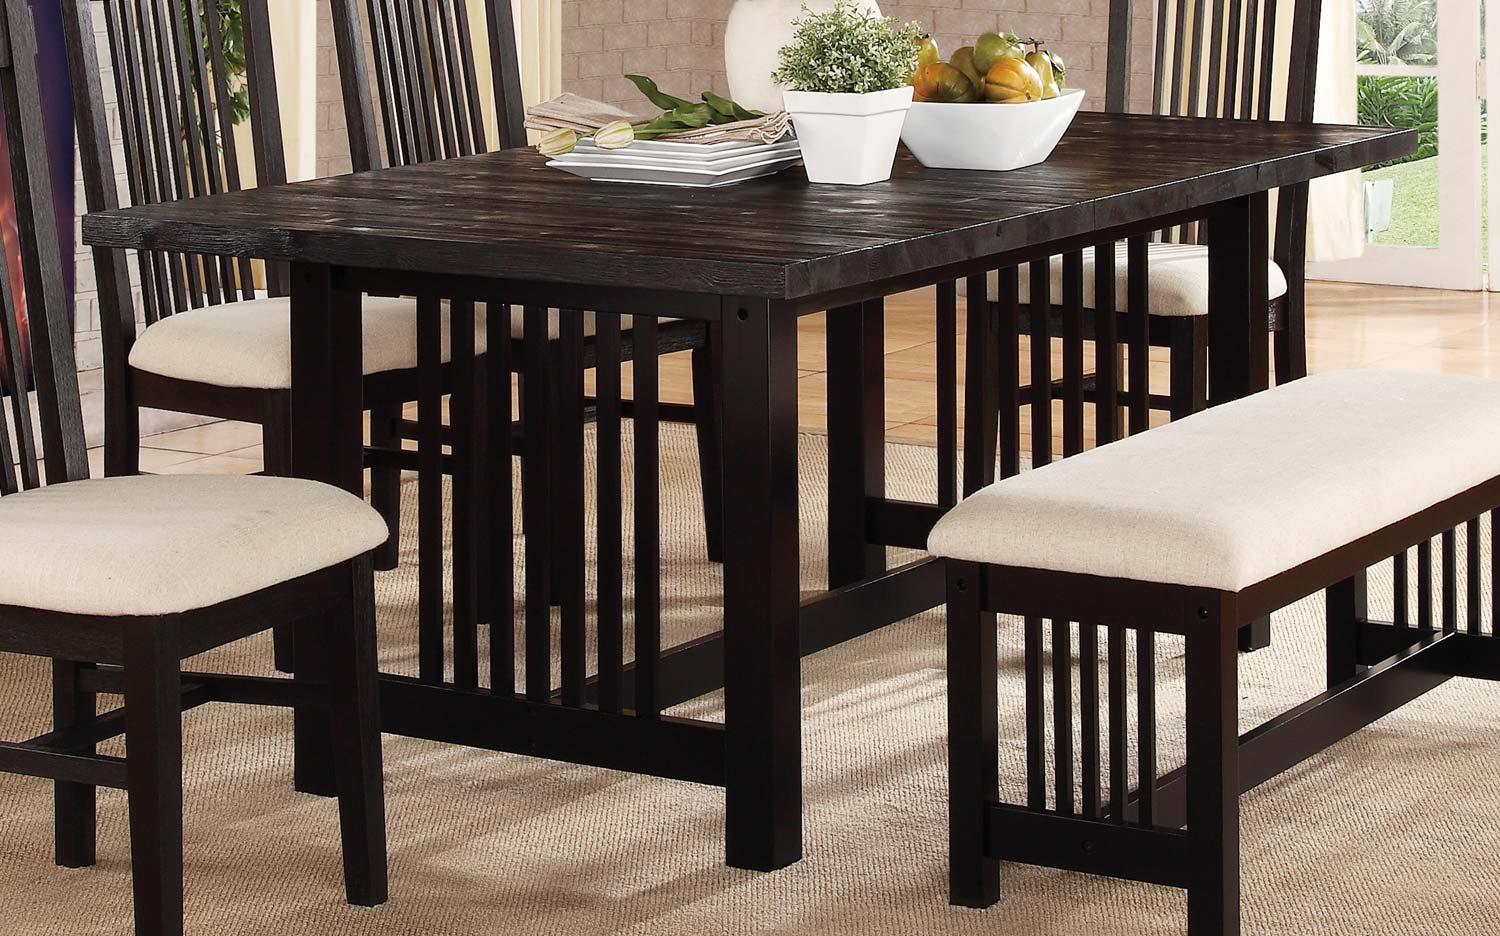 Homelegance Irrington Trestle Dining Table Black Driftwood - 72 trestle dining table